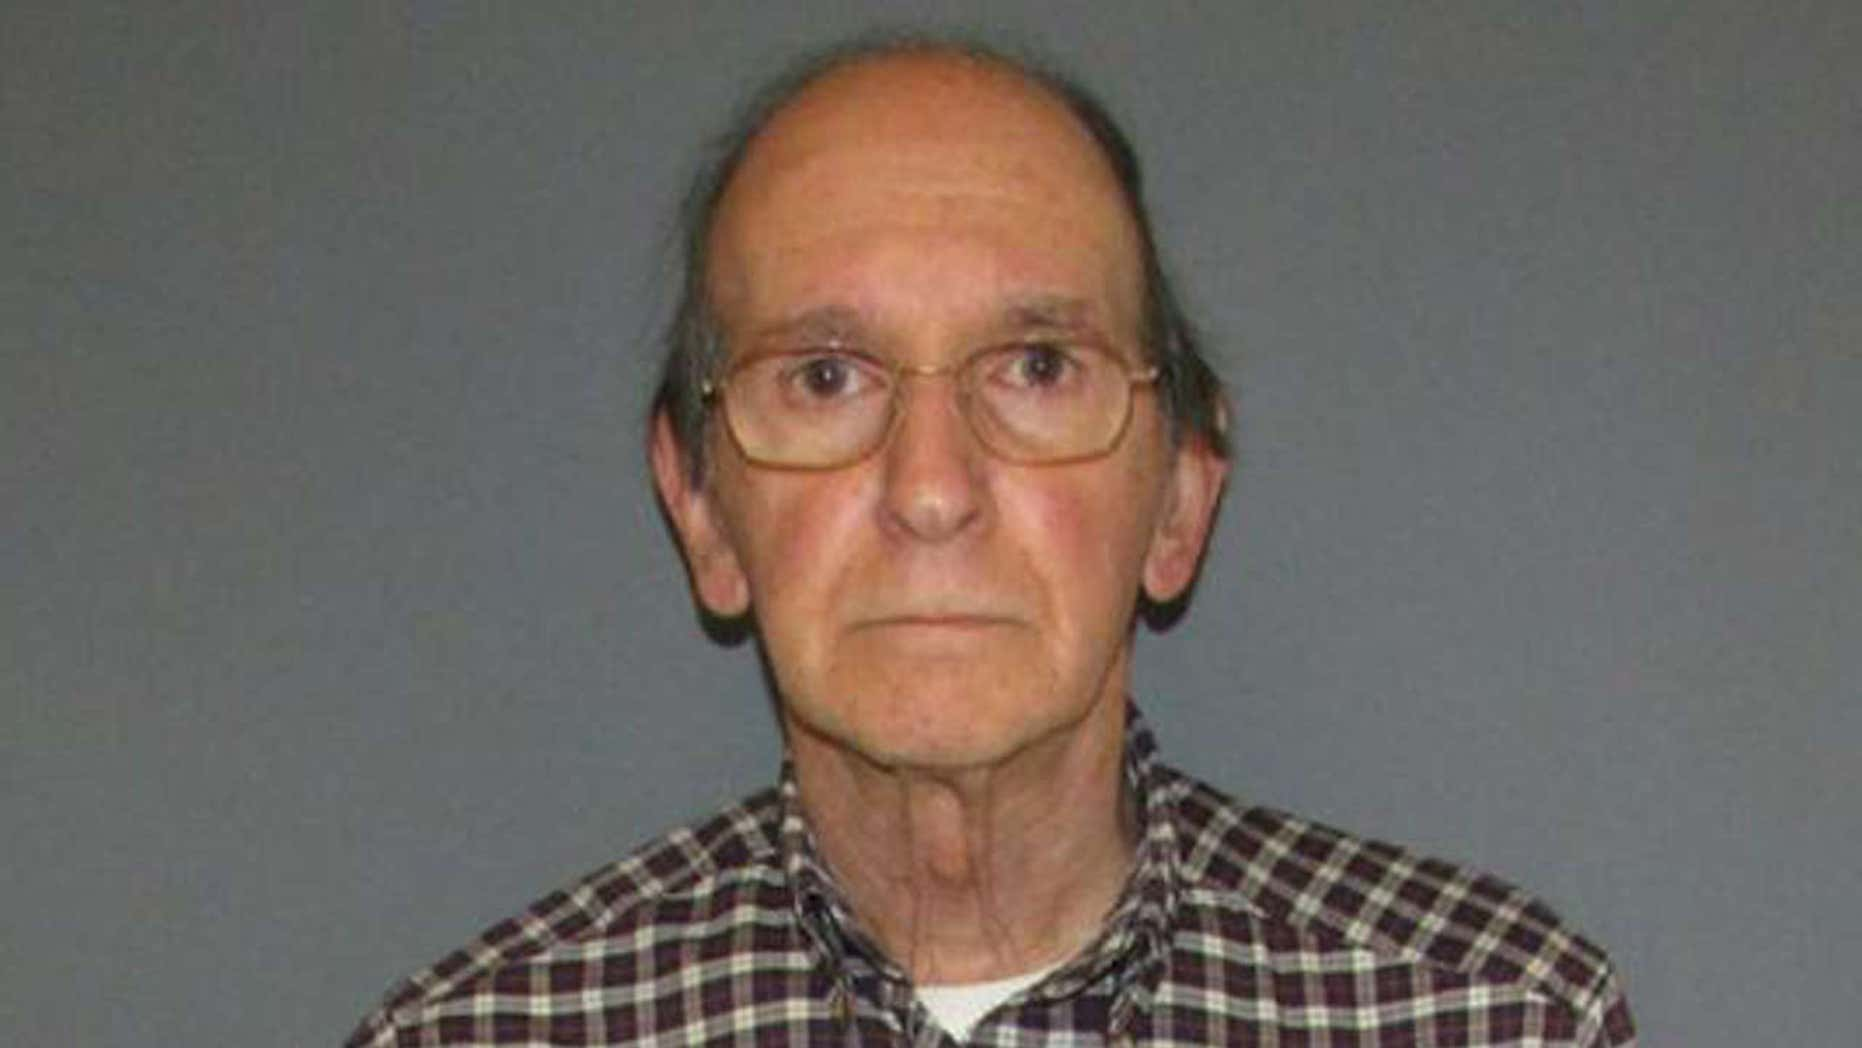 Carl Puia, 74, is accused of destroying several Kim Kardashian selfie books at a Conn. book store.